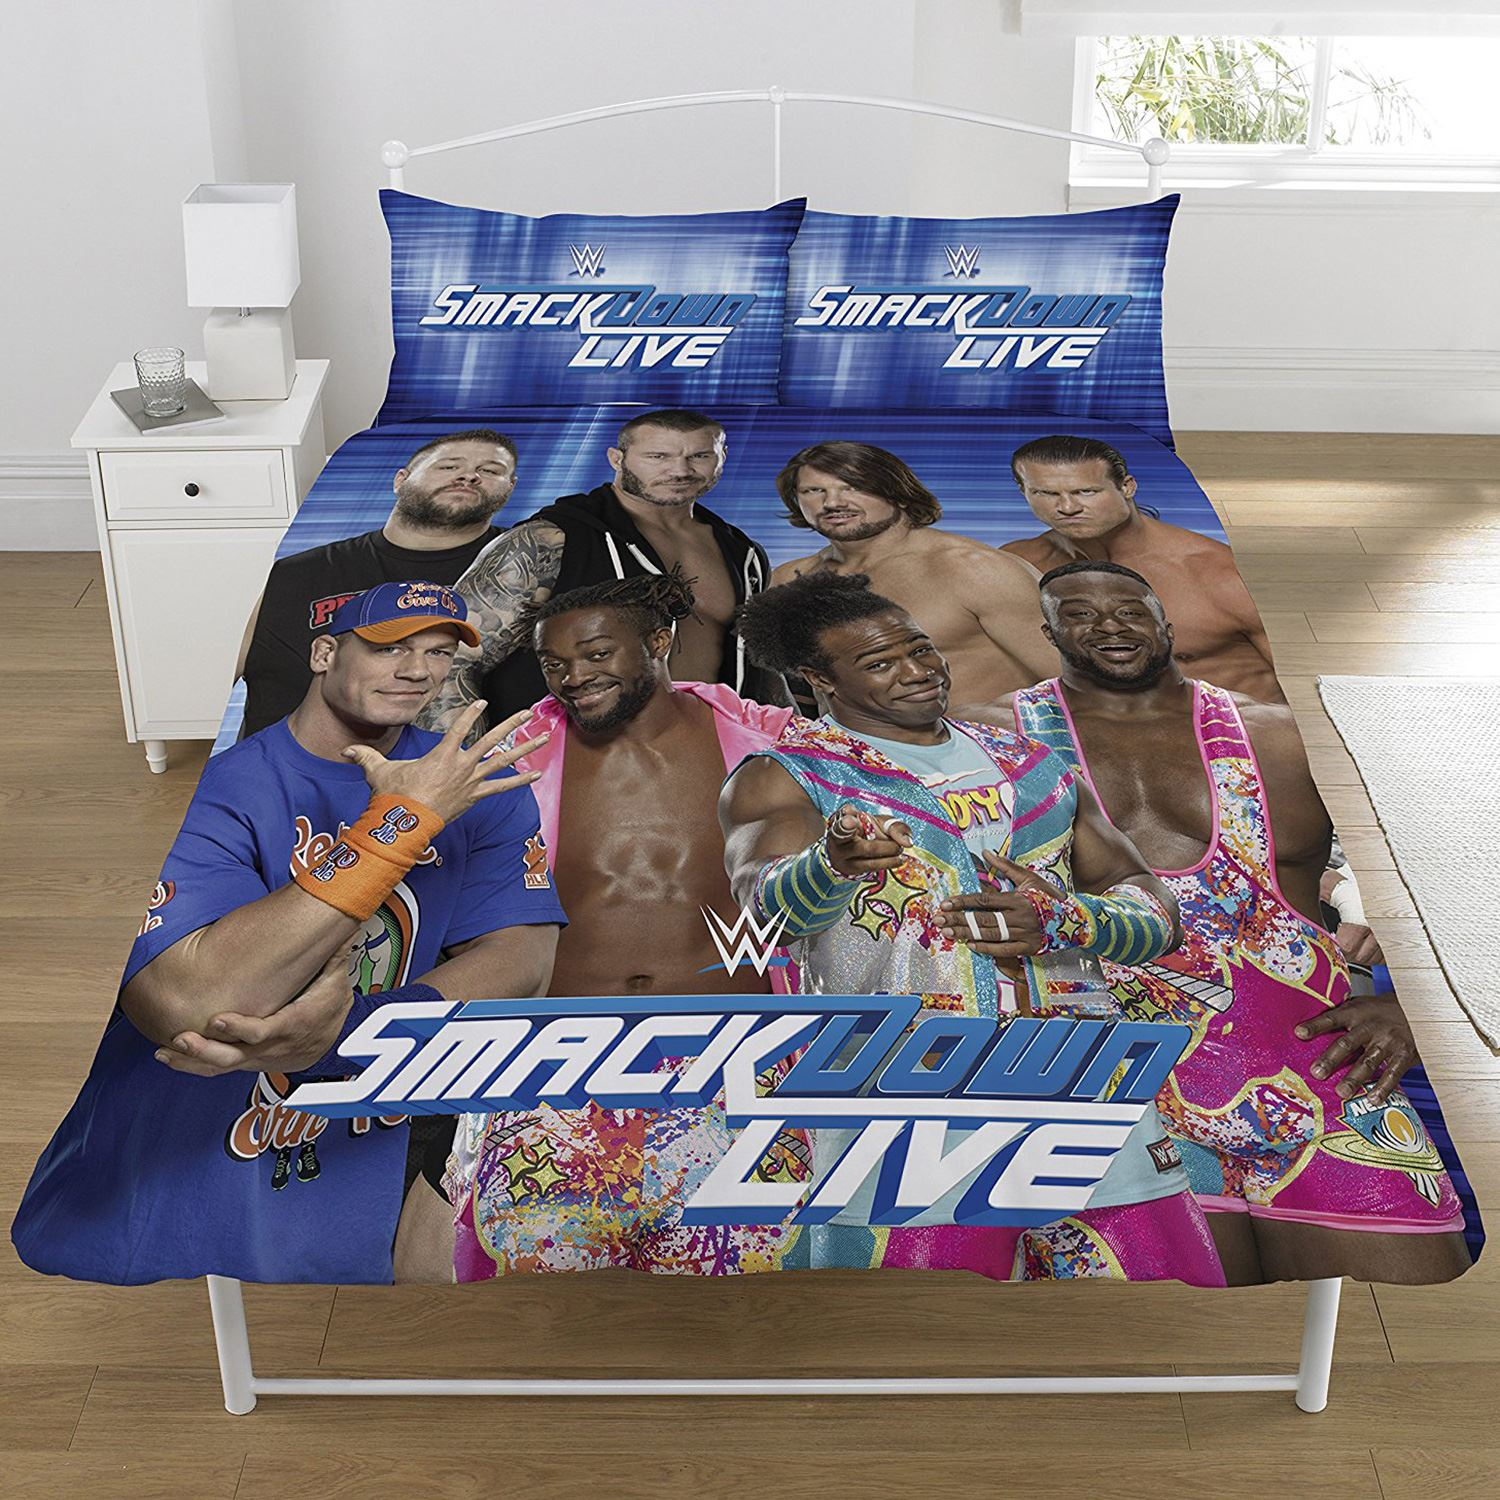 WWE RAW V SMACKDOWN DUVET COVER SET REVERSIBLE KIDS